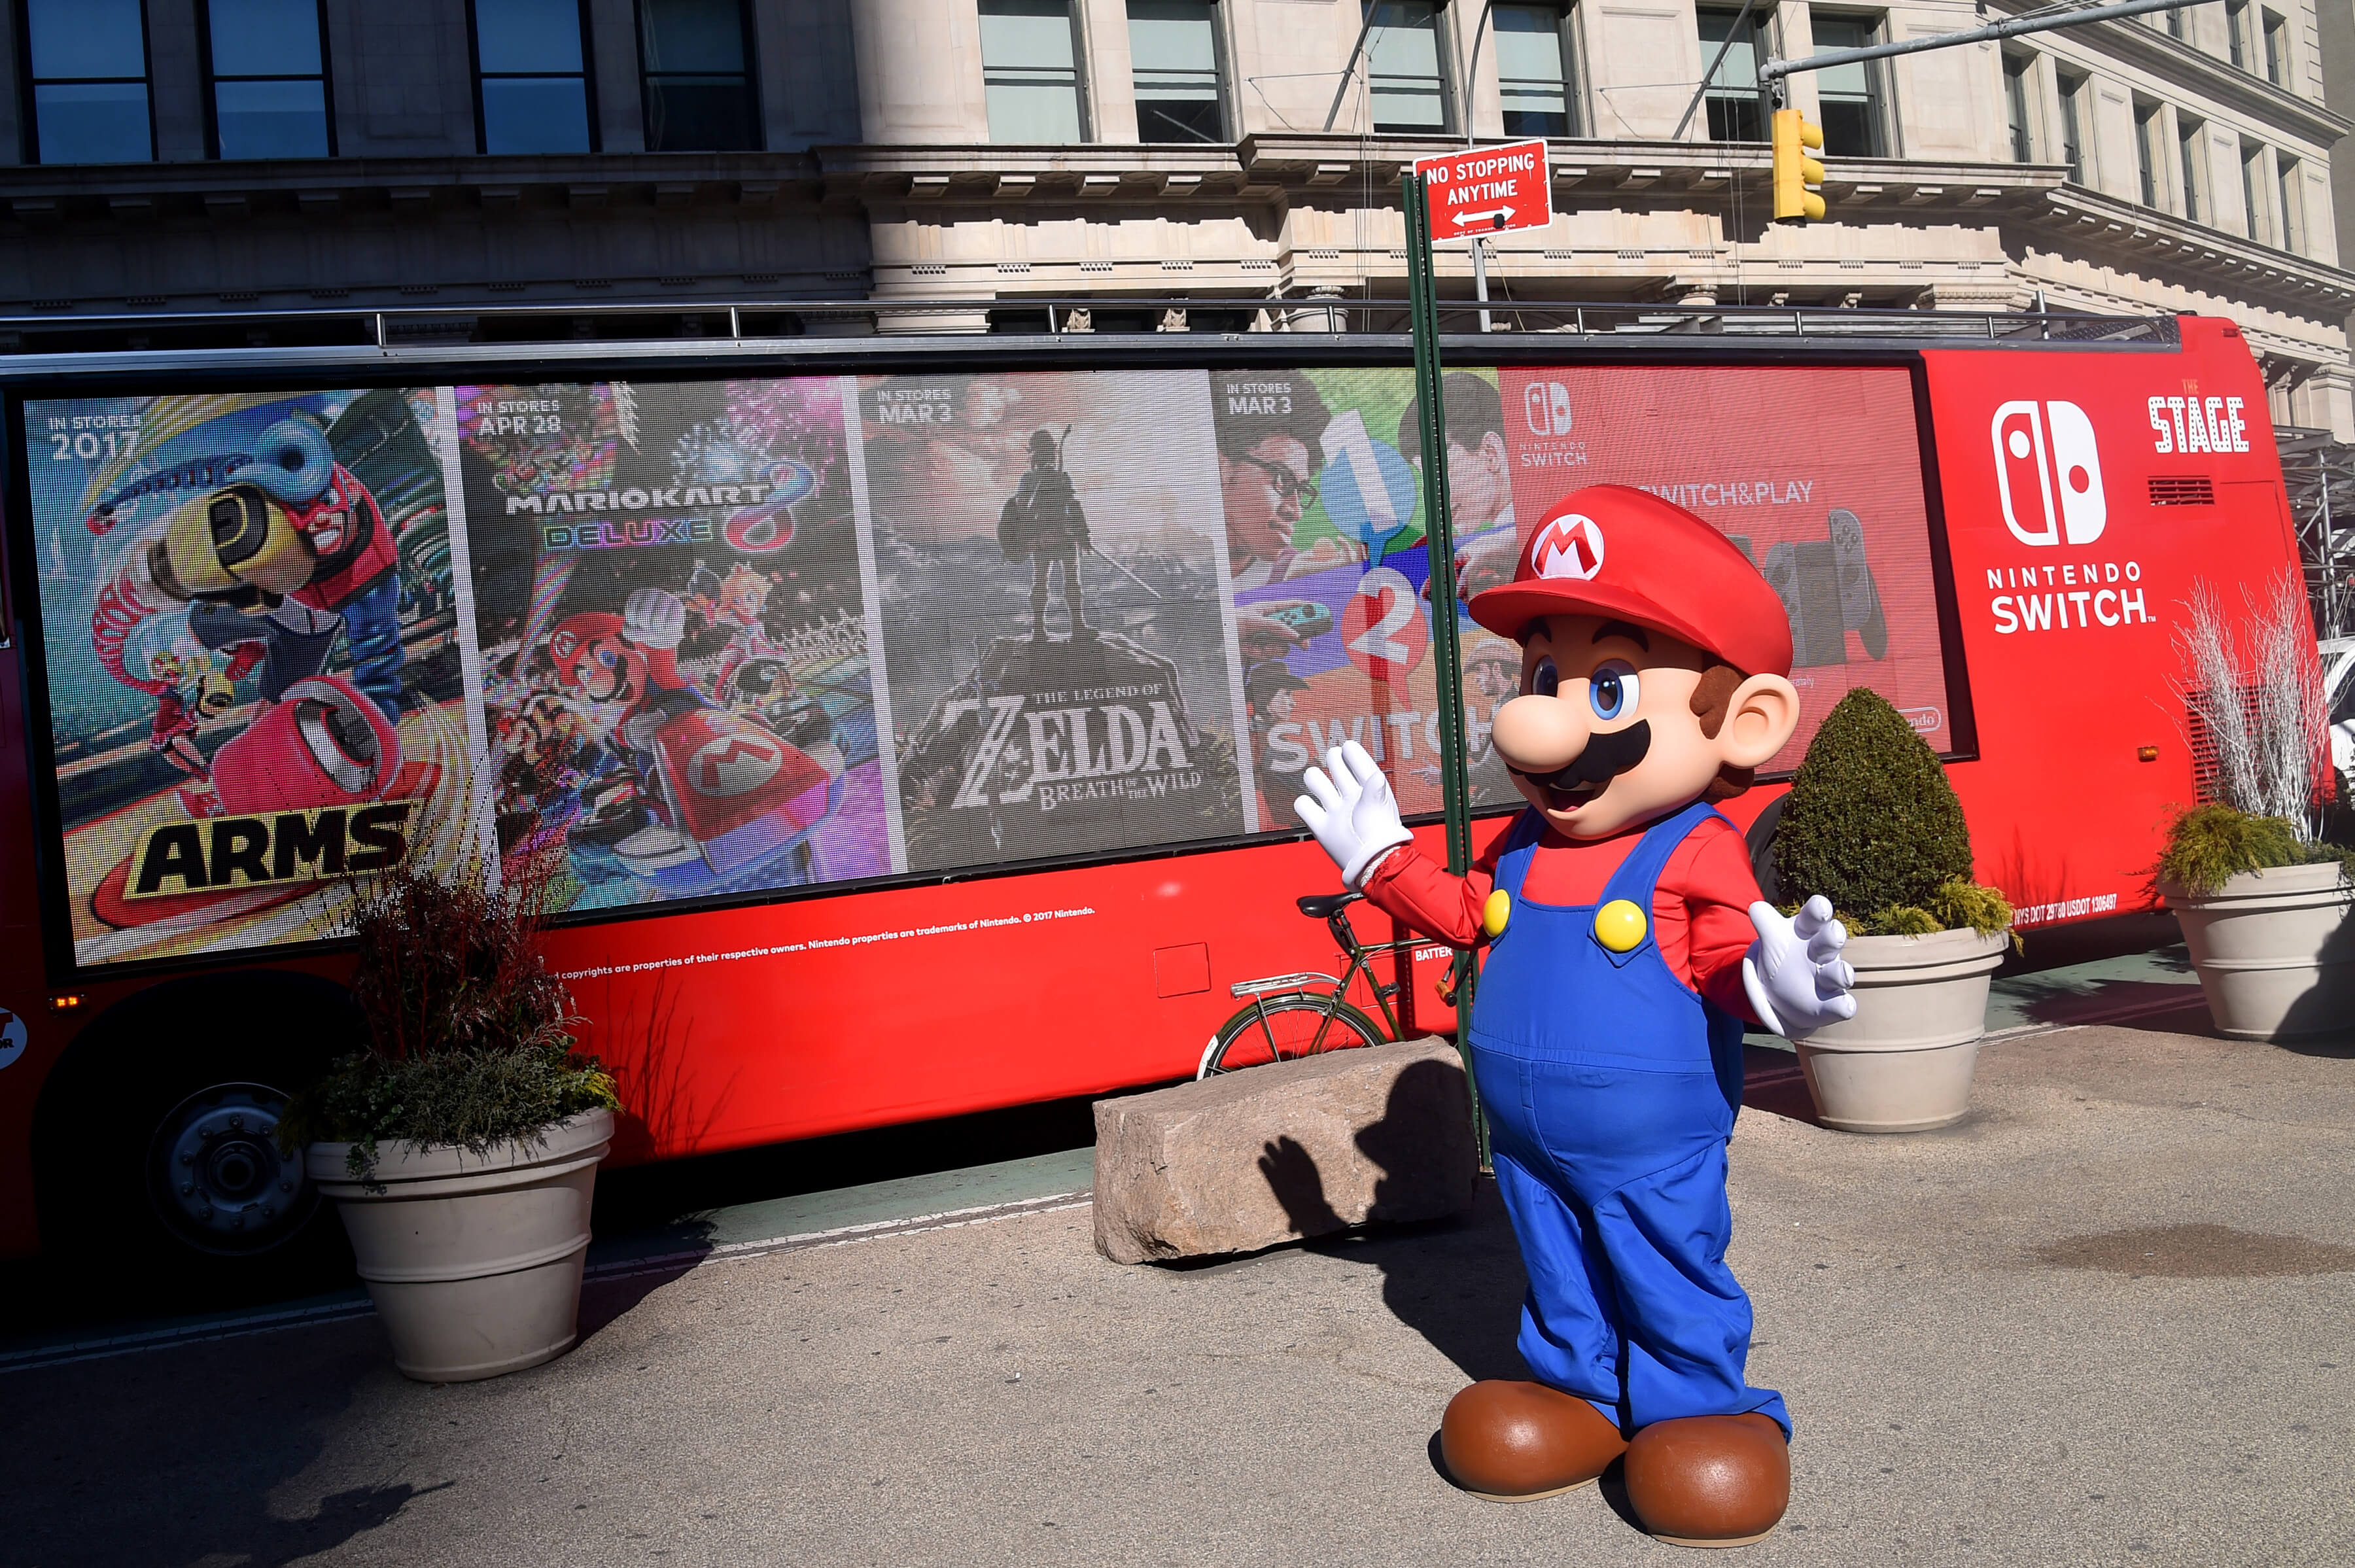 The tag team duo, Mario and Luigi were also spotted at the Madison Square Park pop-up to celebrate and engage consumers at the launch of the Nintendo Switch.